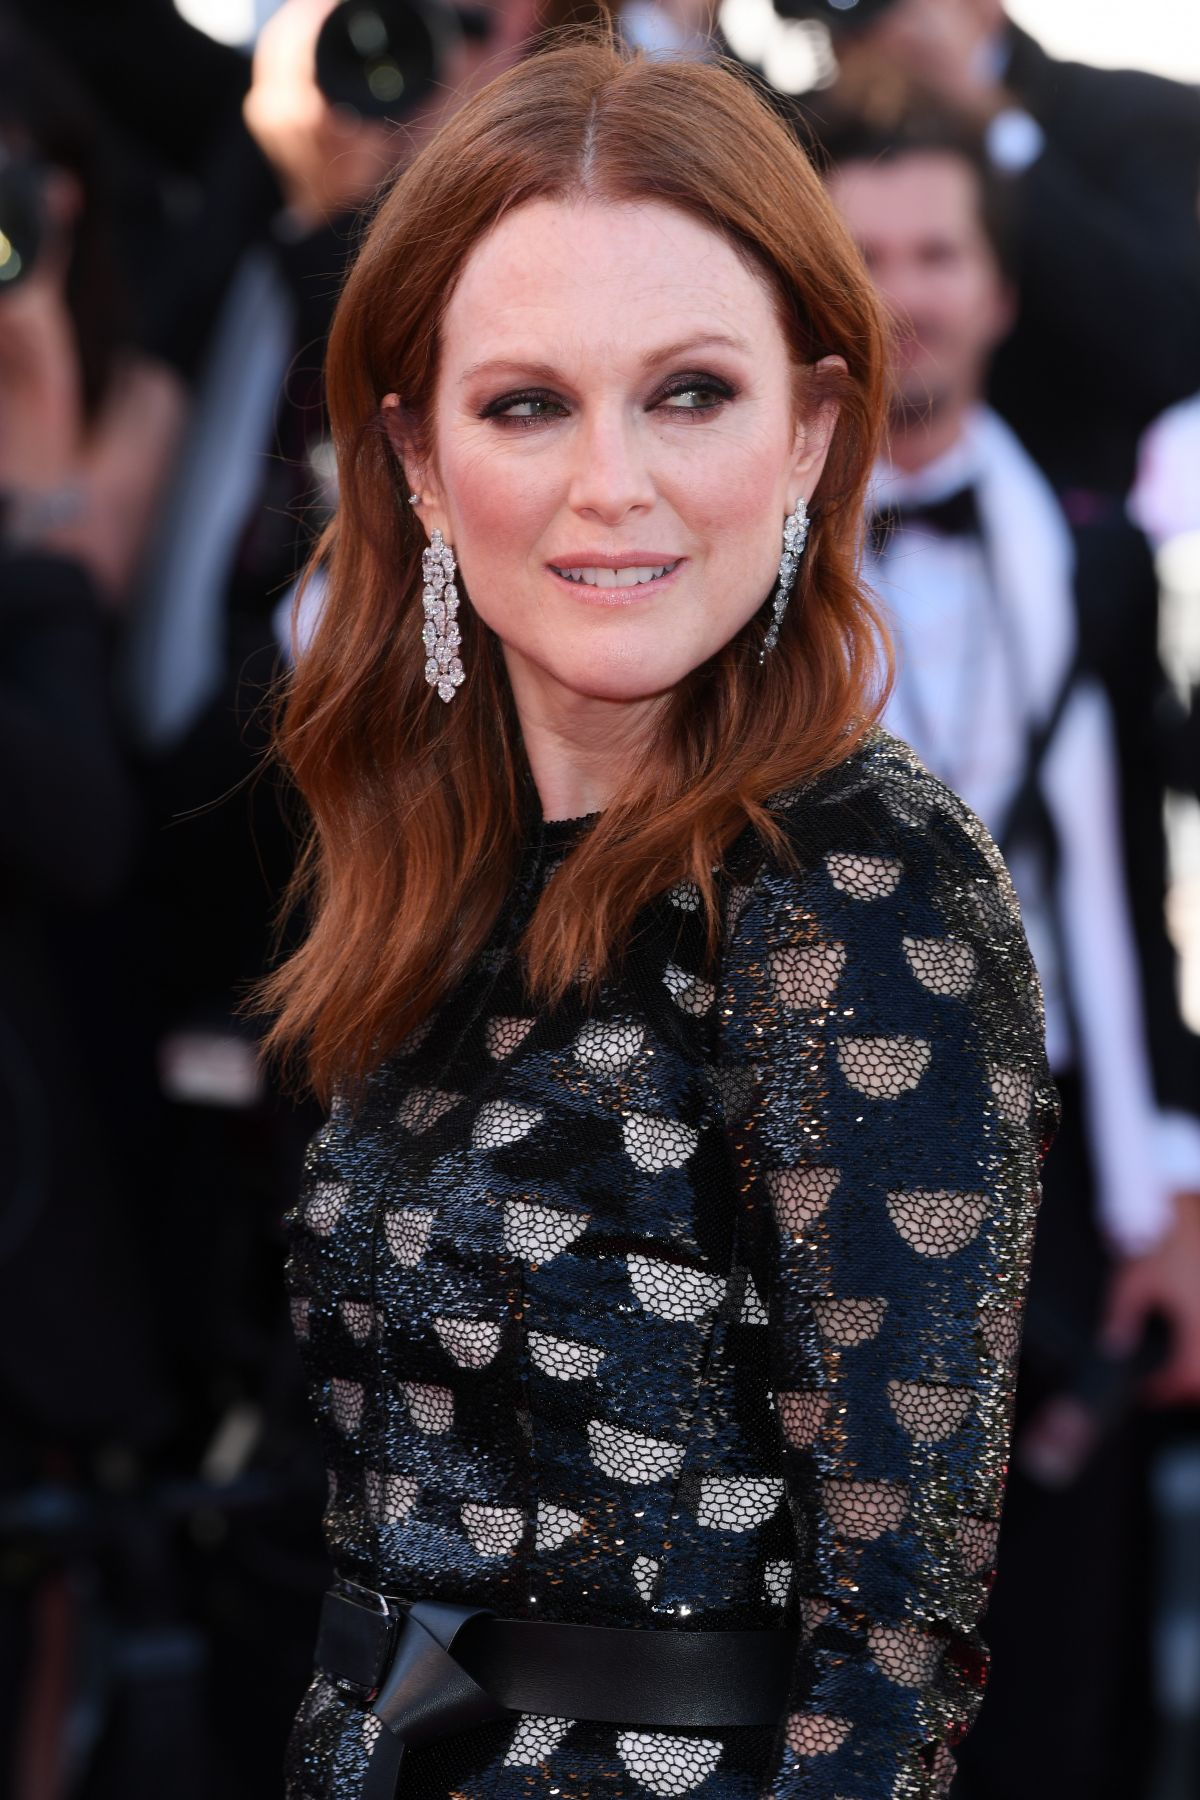 Julianne Moore deep red hair colors for fall winter